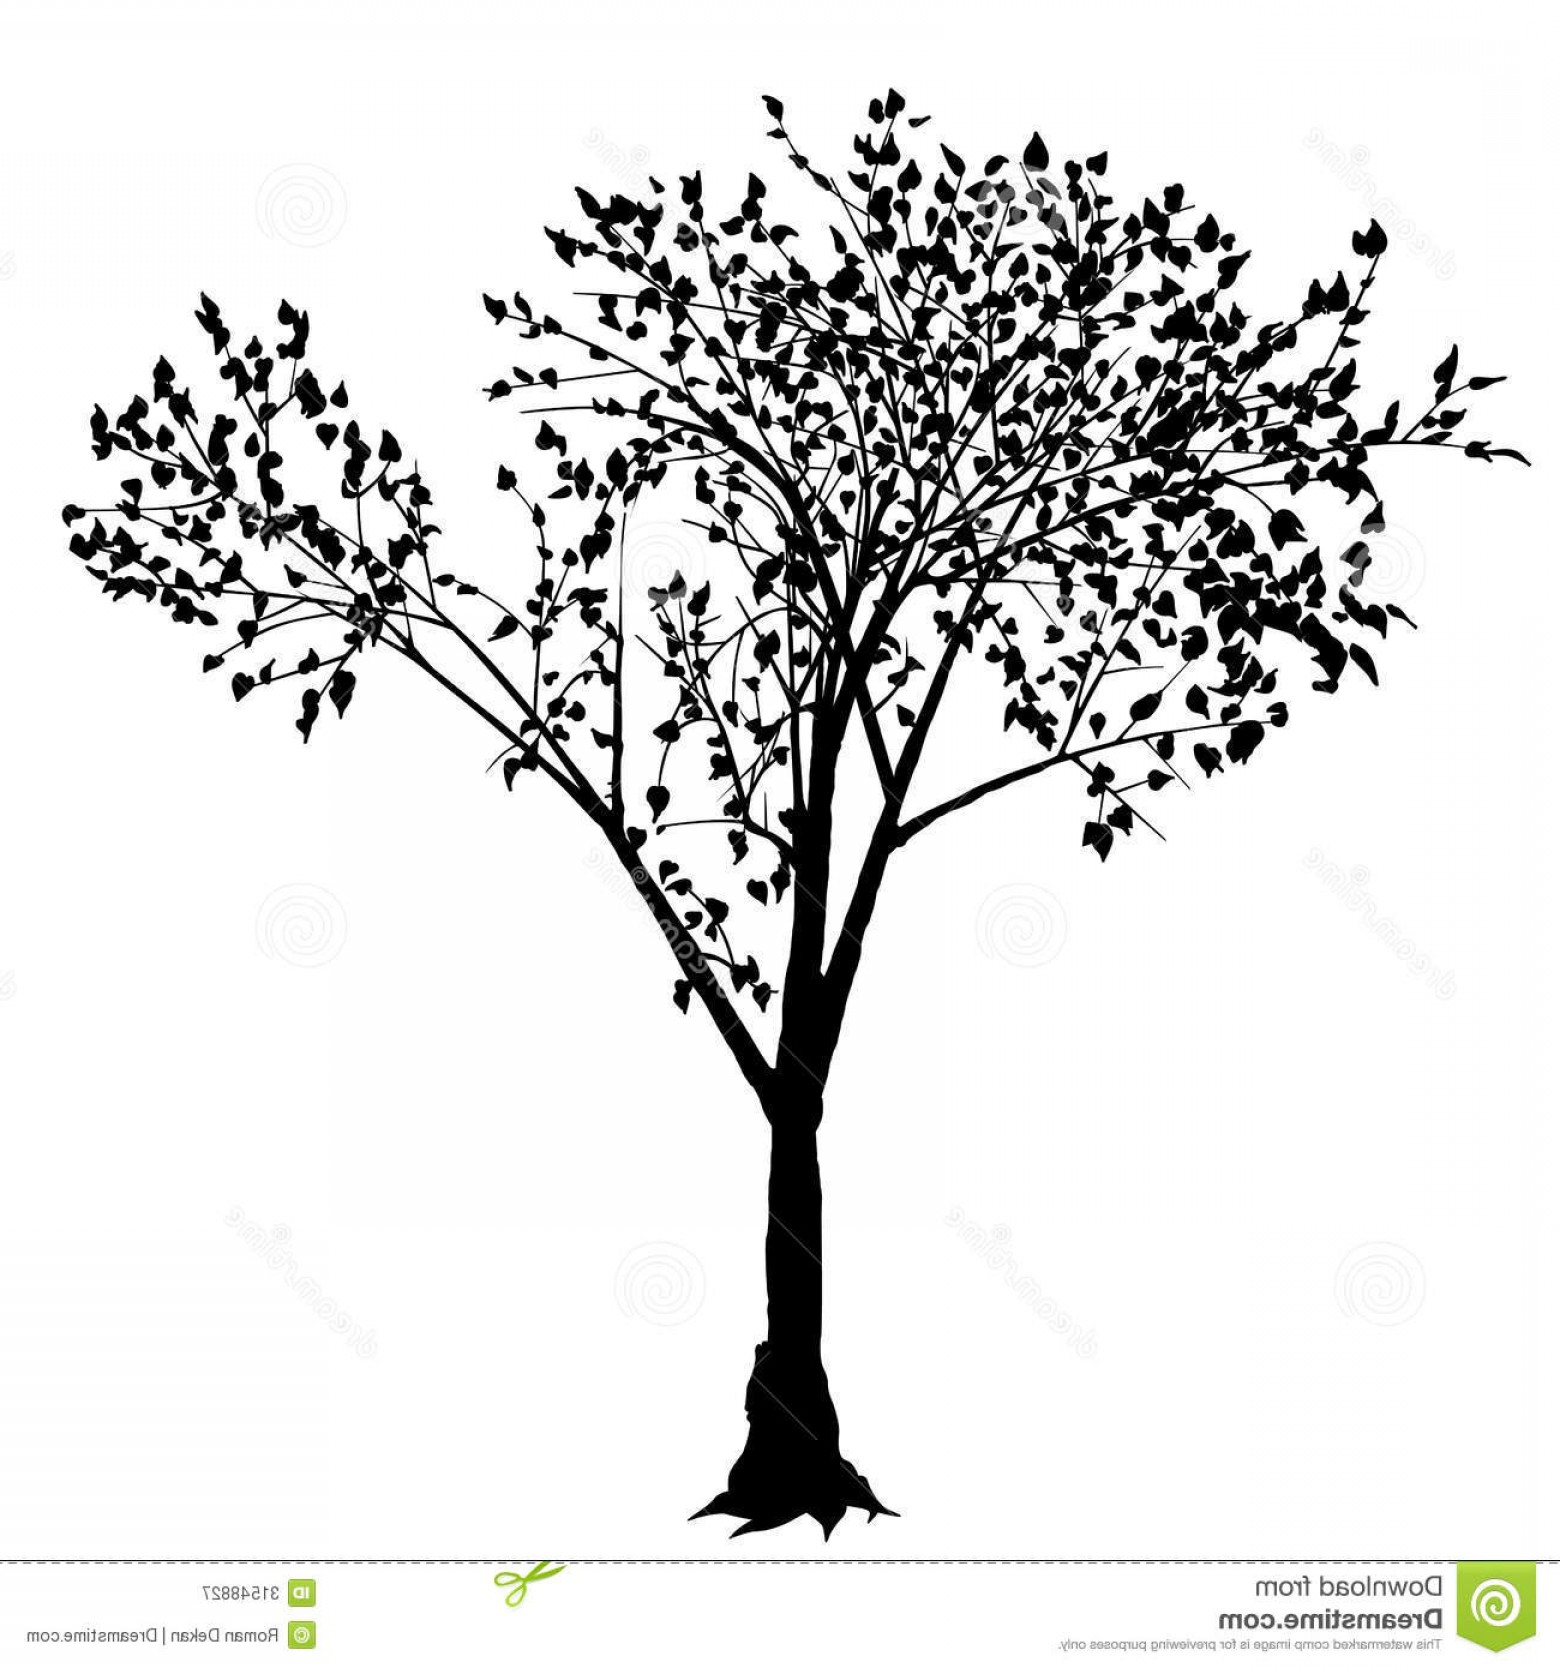 1560x1668 Royalty Free Stock Photography Tree Silhouette Deciduous Black